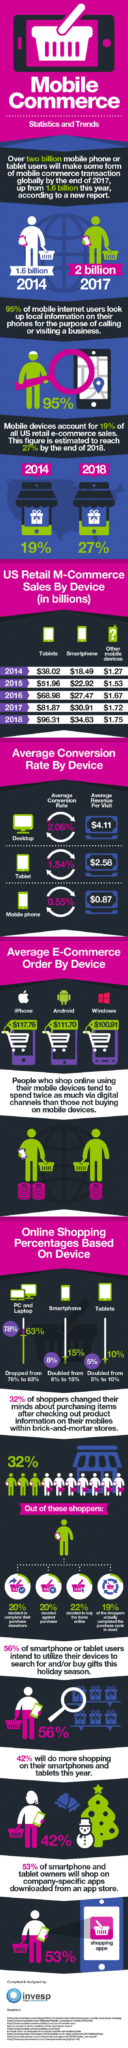 mobile-commerce-infographic